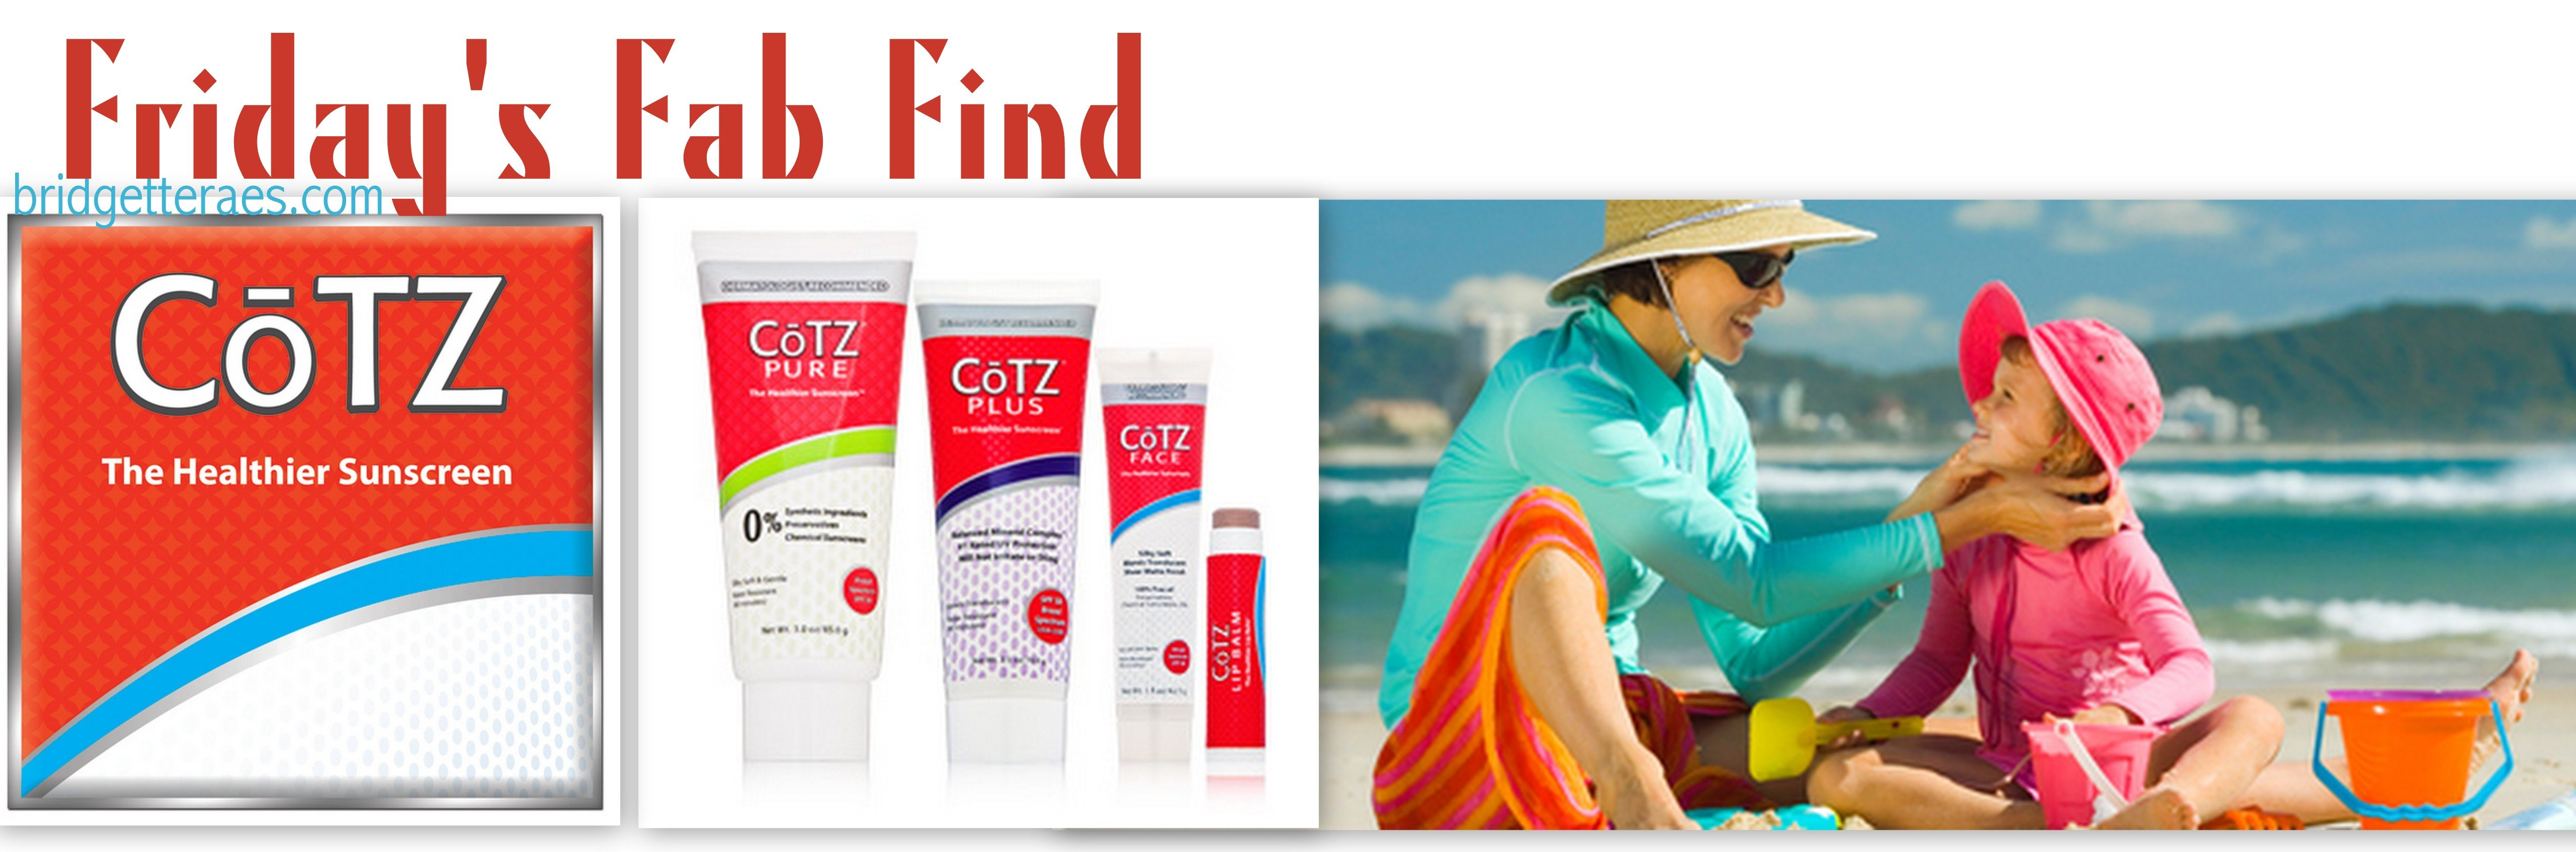 Friday's Fab Find: CoTZ Sunscreen